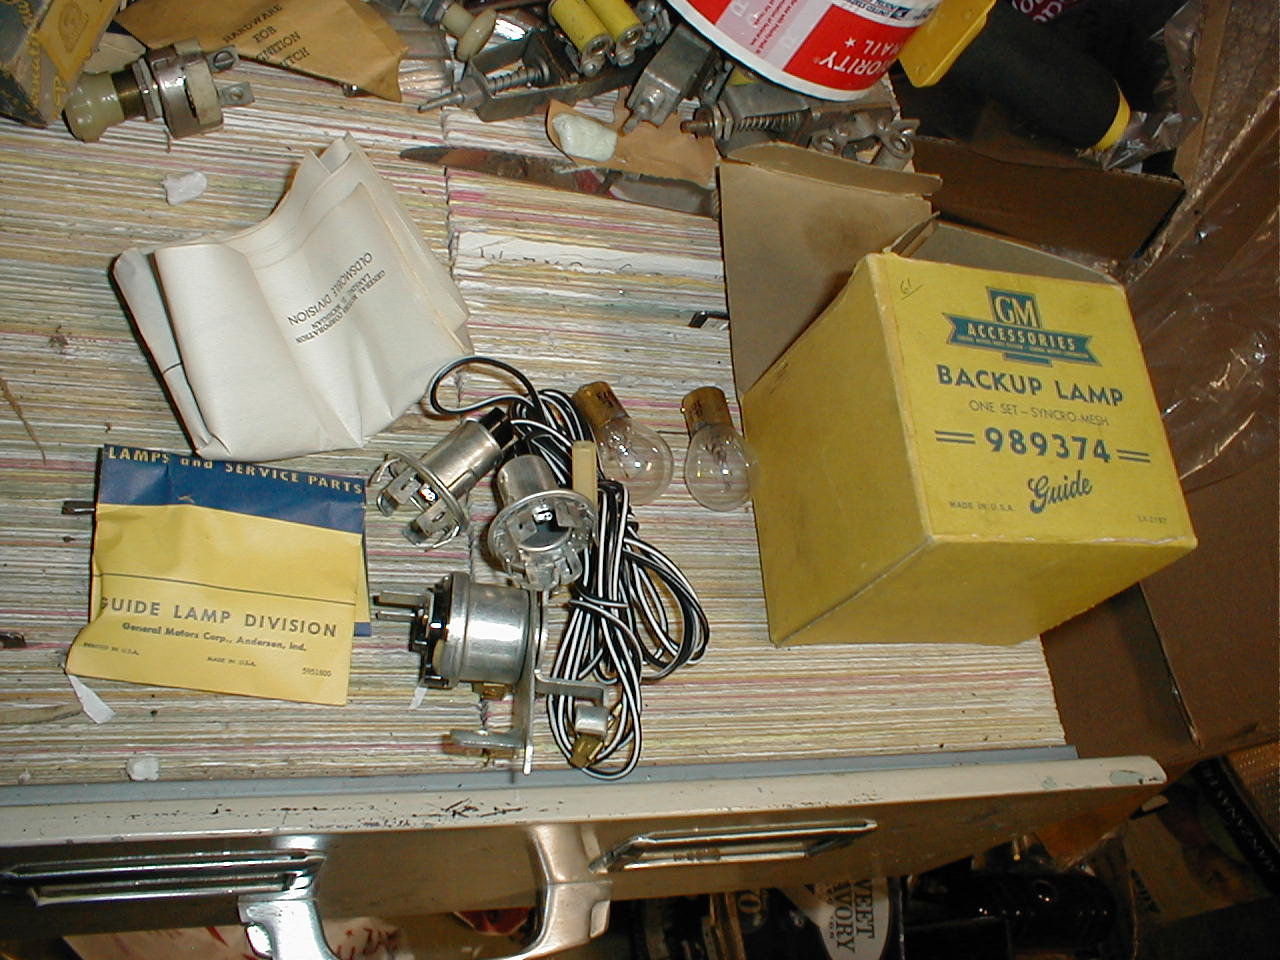 hight resolution of nos gm back up lamps wiring 1961 oldsmobile with syncromesh gm989374